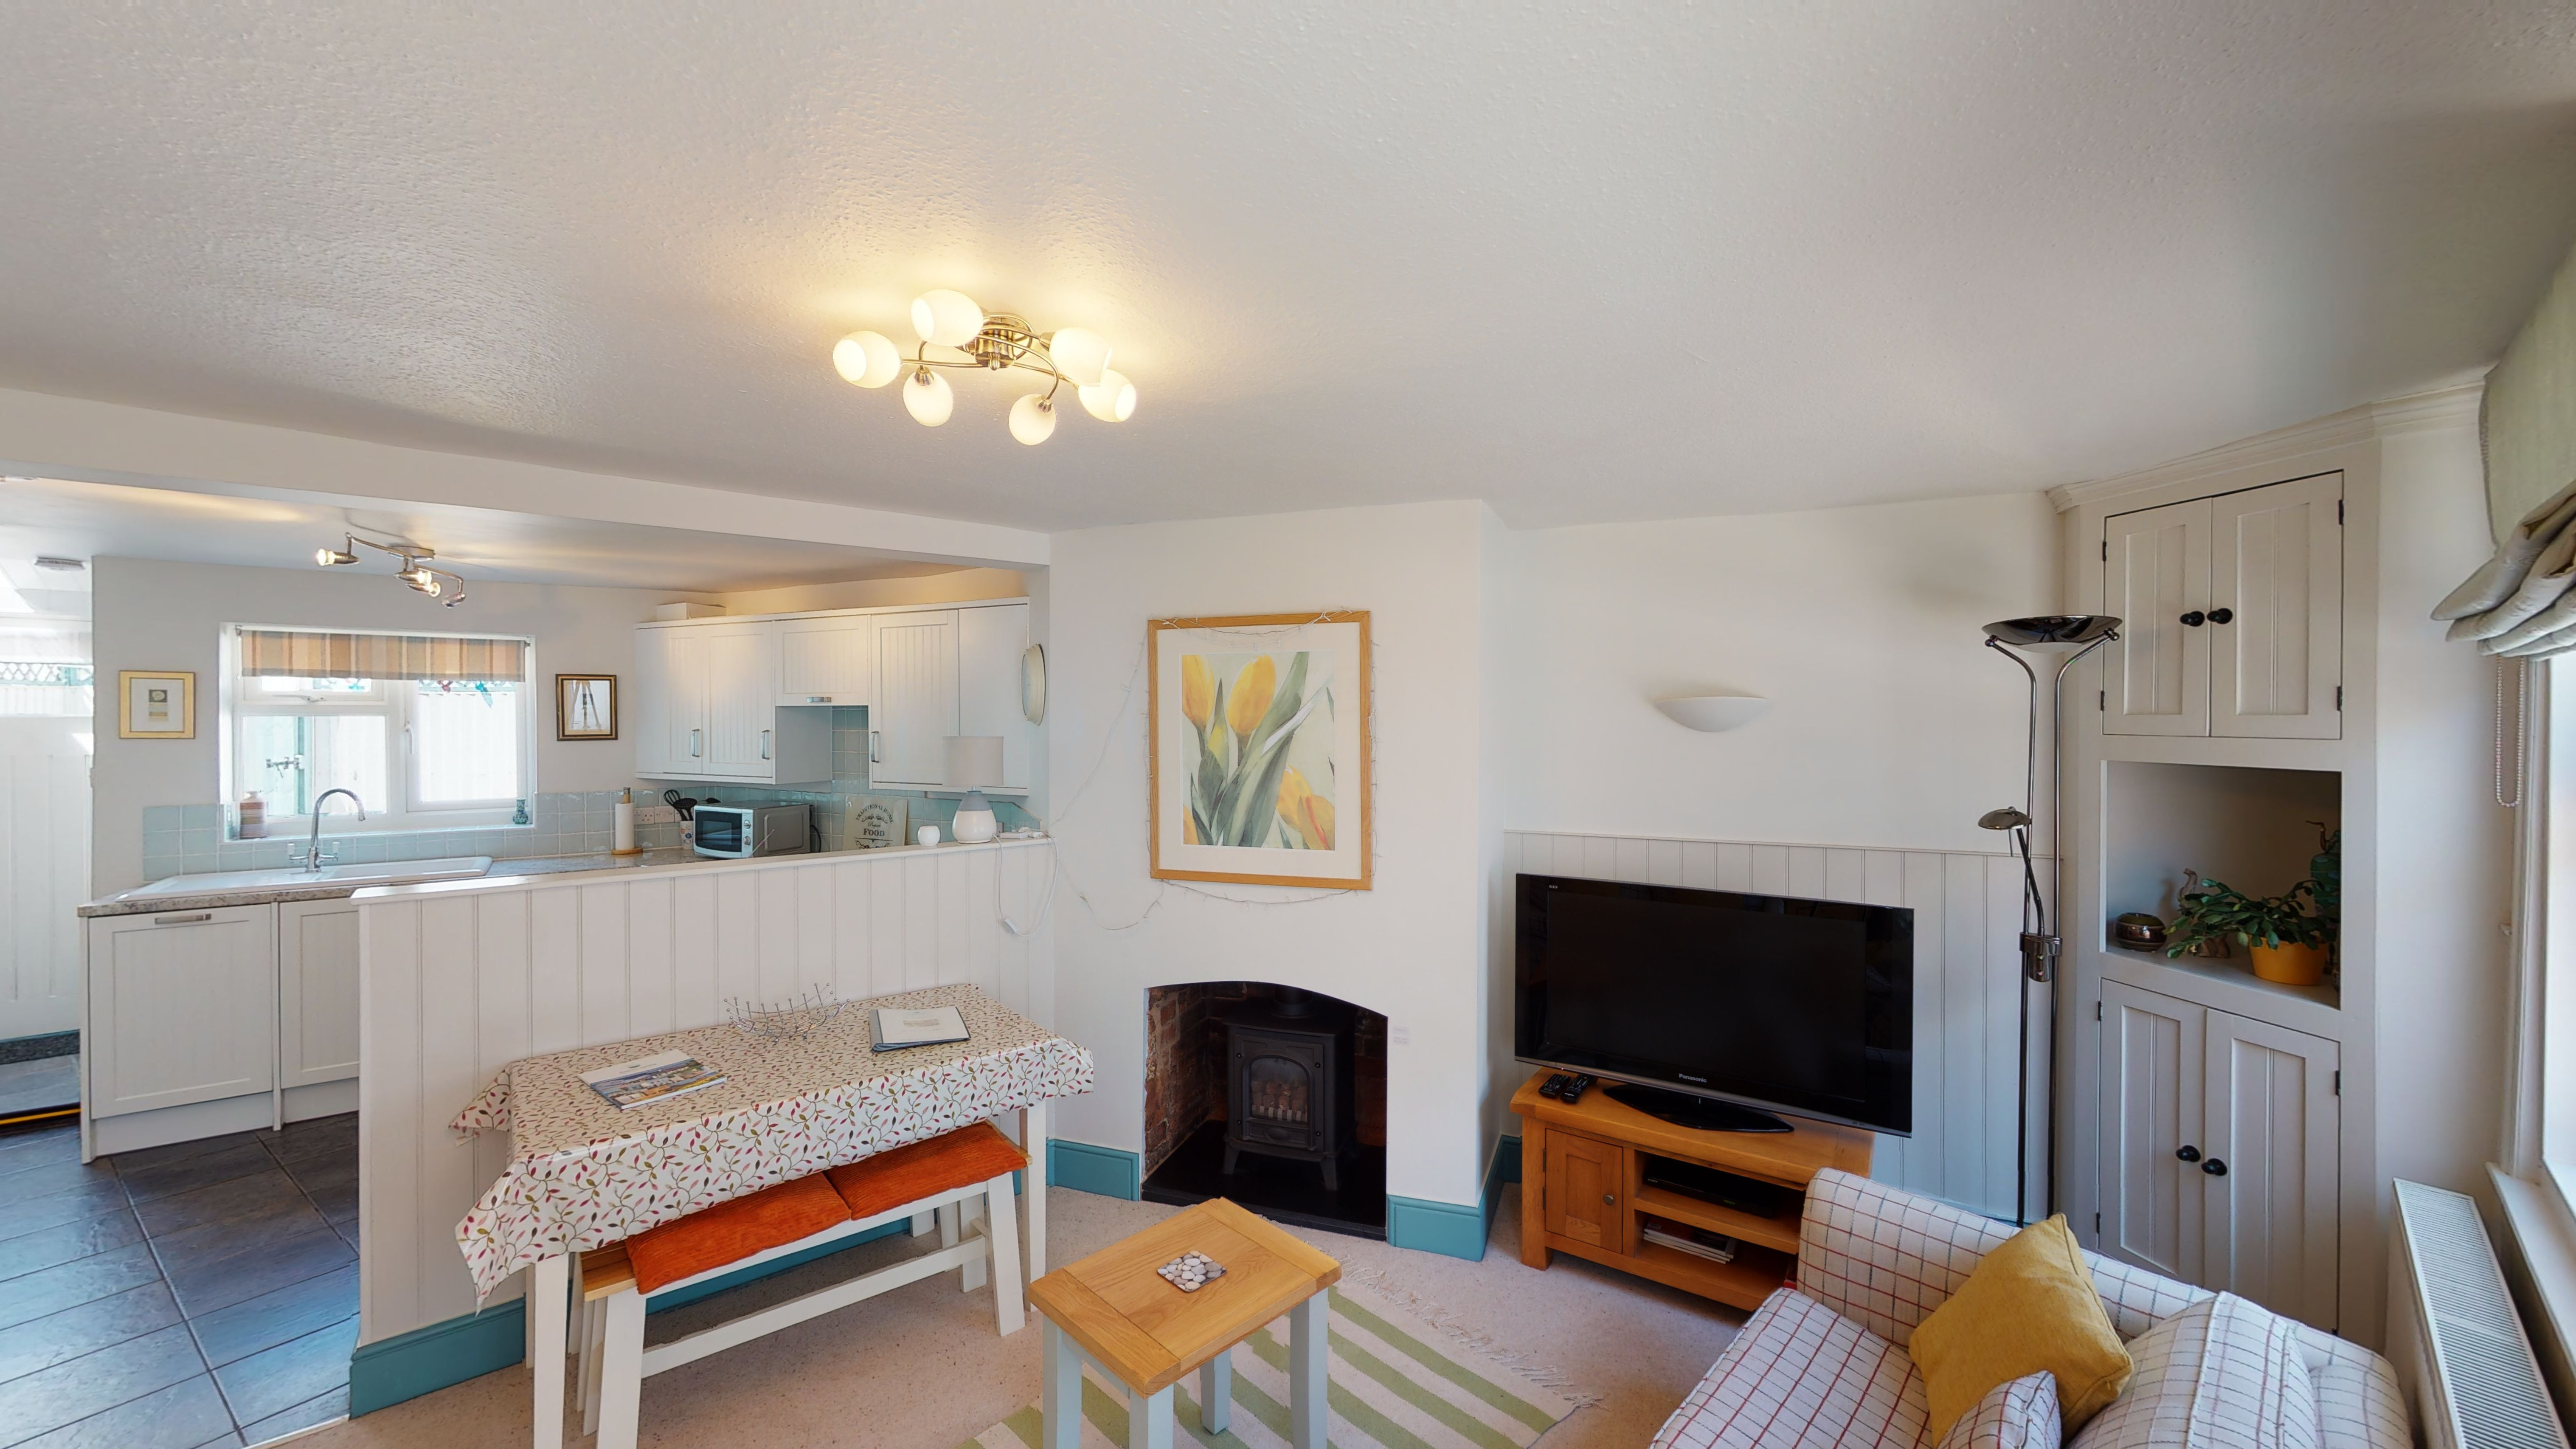 Seagull Cottage 07252020 115411